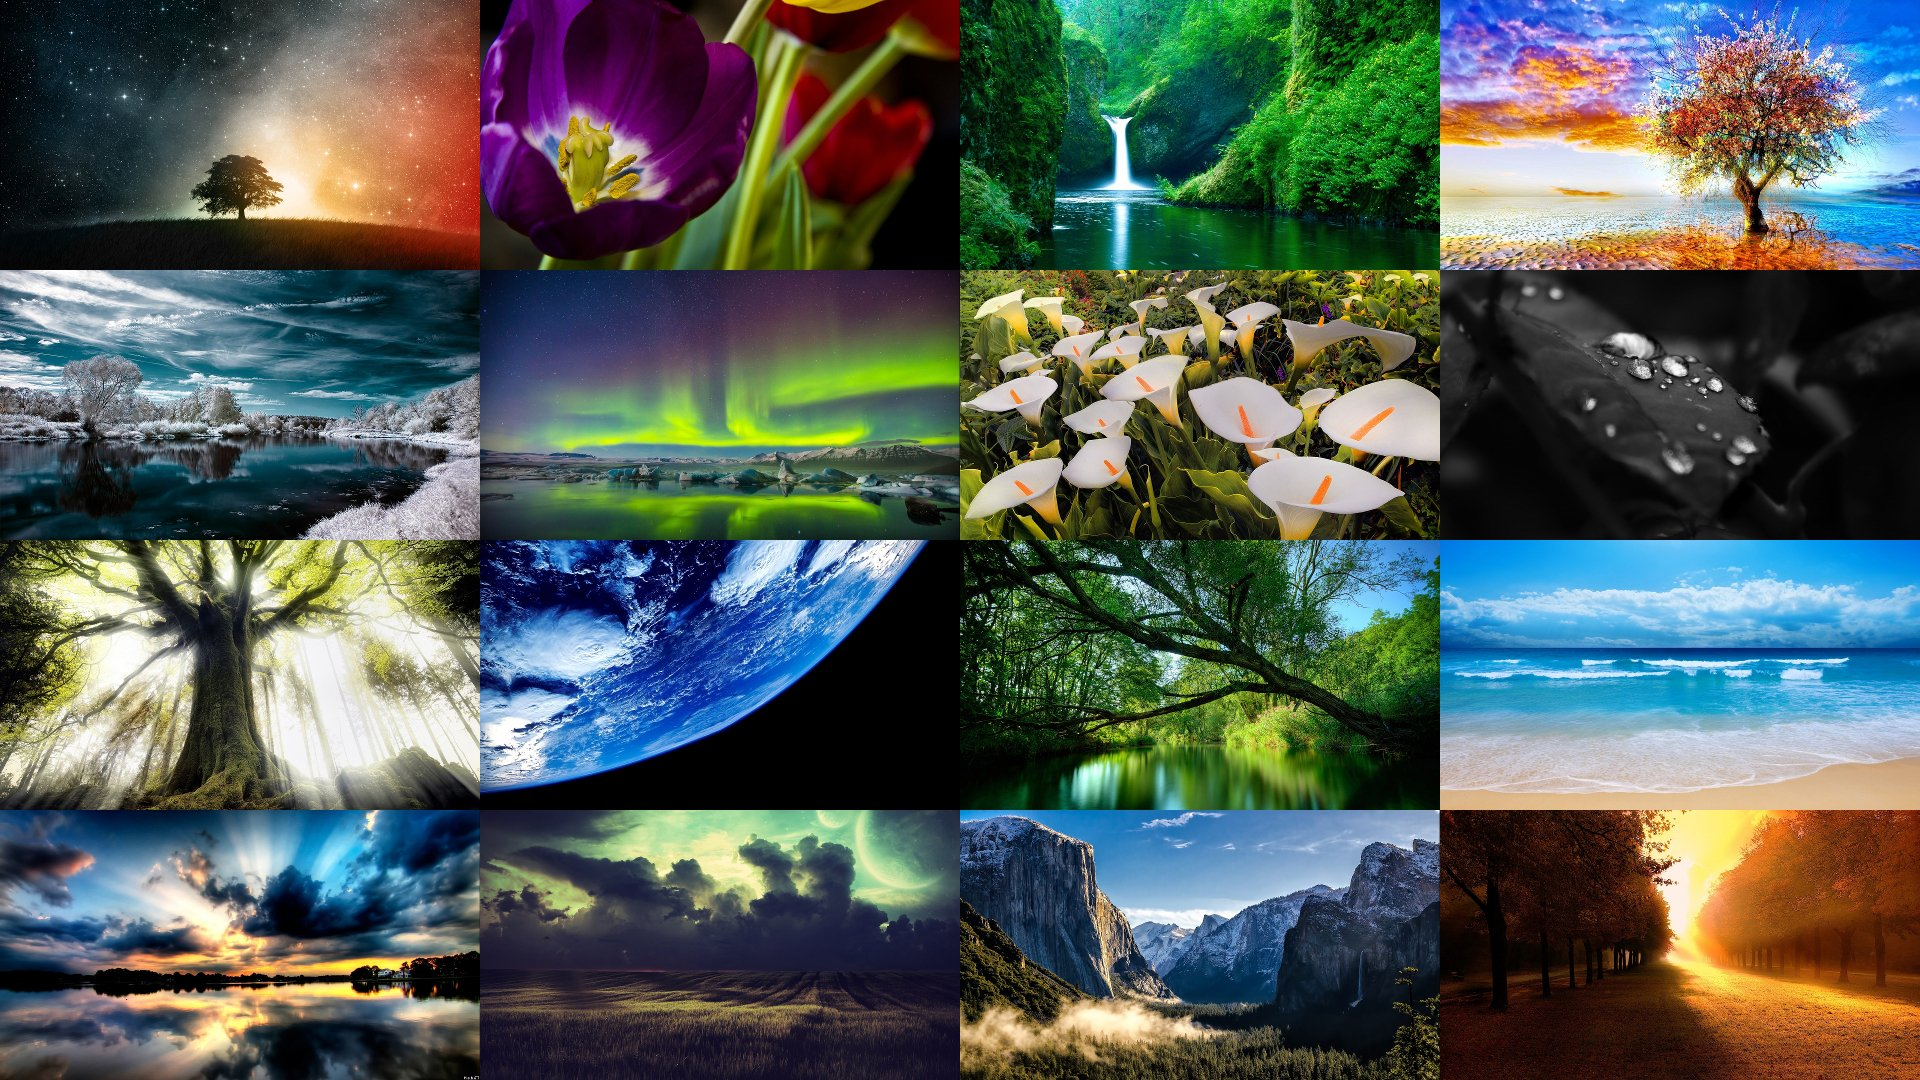 10191 4k Ultra Hd Earth Nature Wallpapers Background Images Wallpaper Abyss